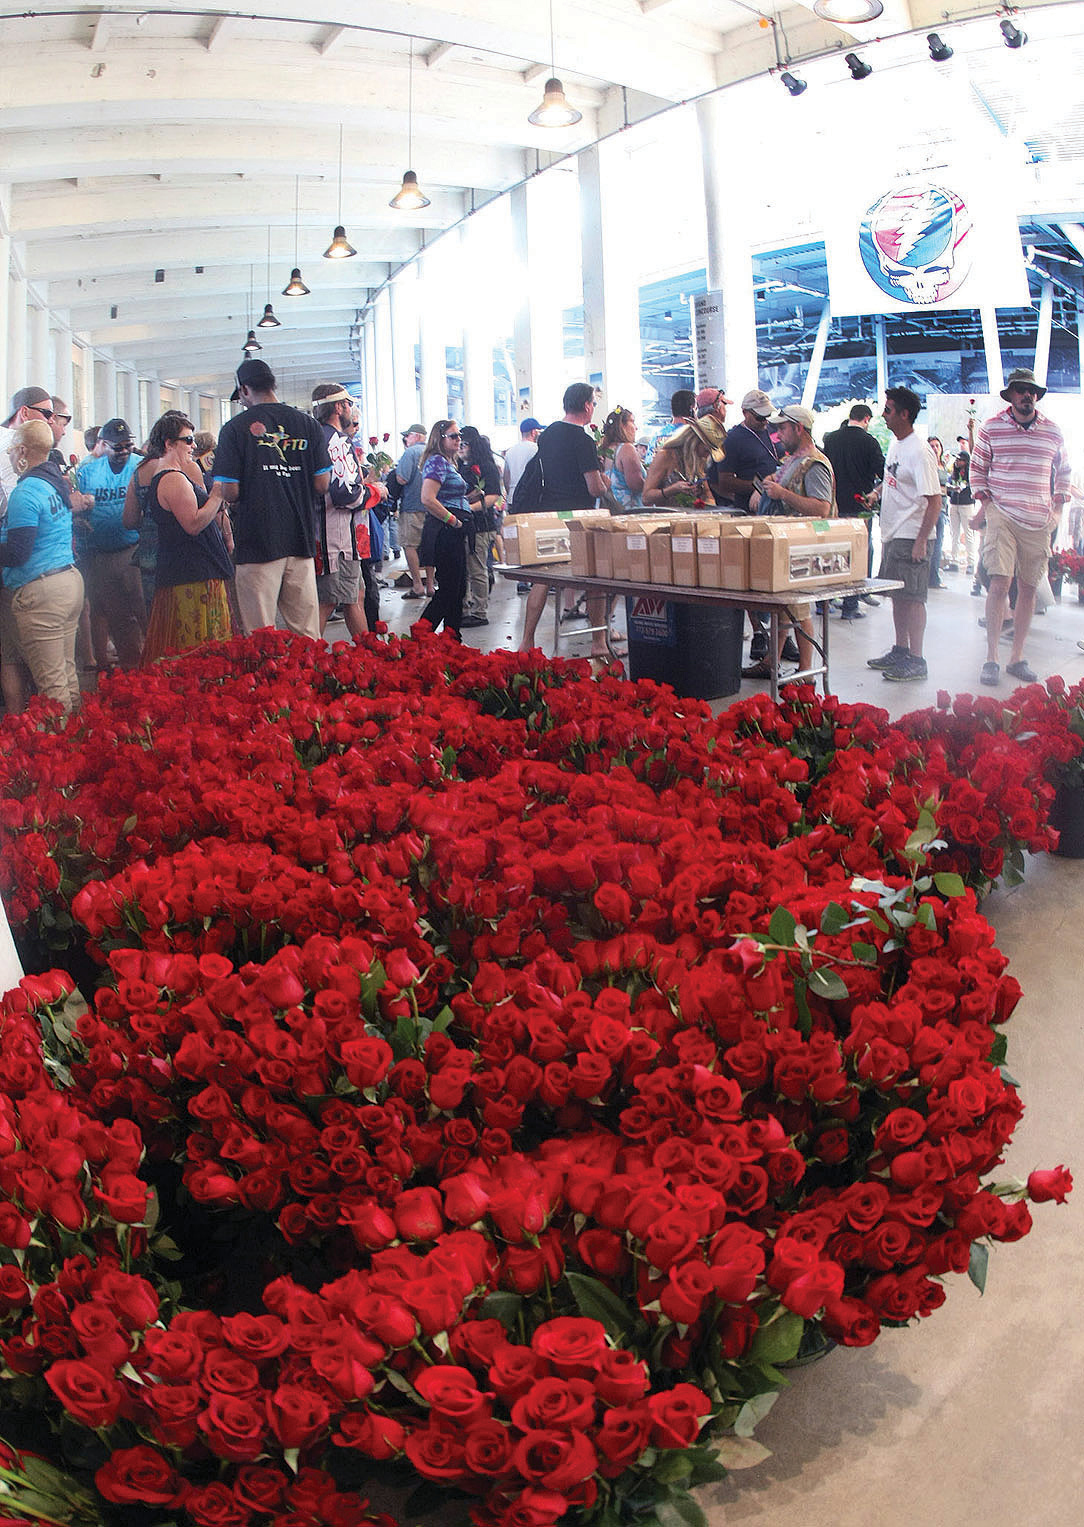 Spencer Tulis/Finger Lakes Times<br /> FTD florists handed out over 50,000 free roses at the opening concert Friday. Roses are one of the main images relating to The Grateful Dead on album covers, posters, tee-shirts, promotions and in their songs.